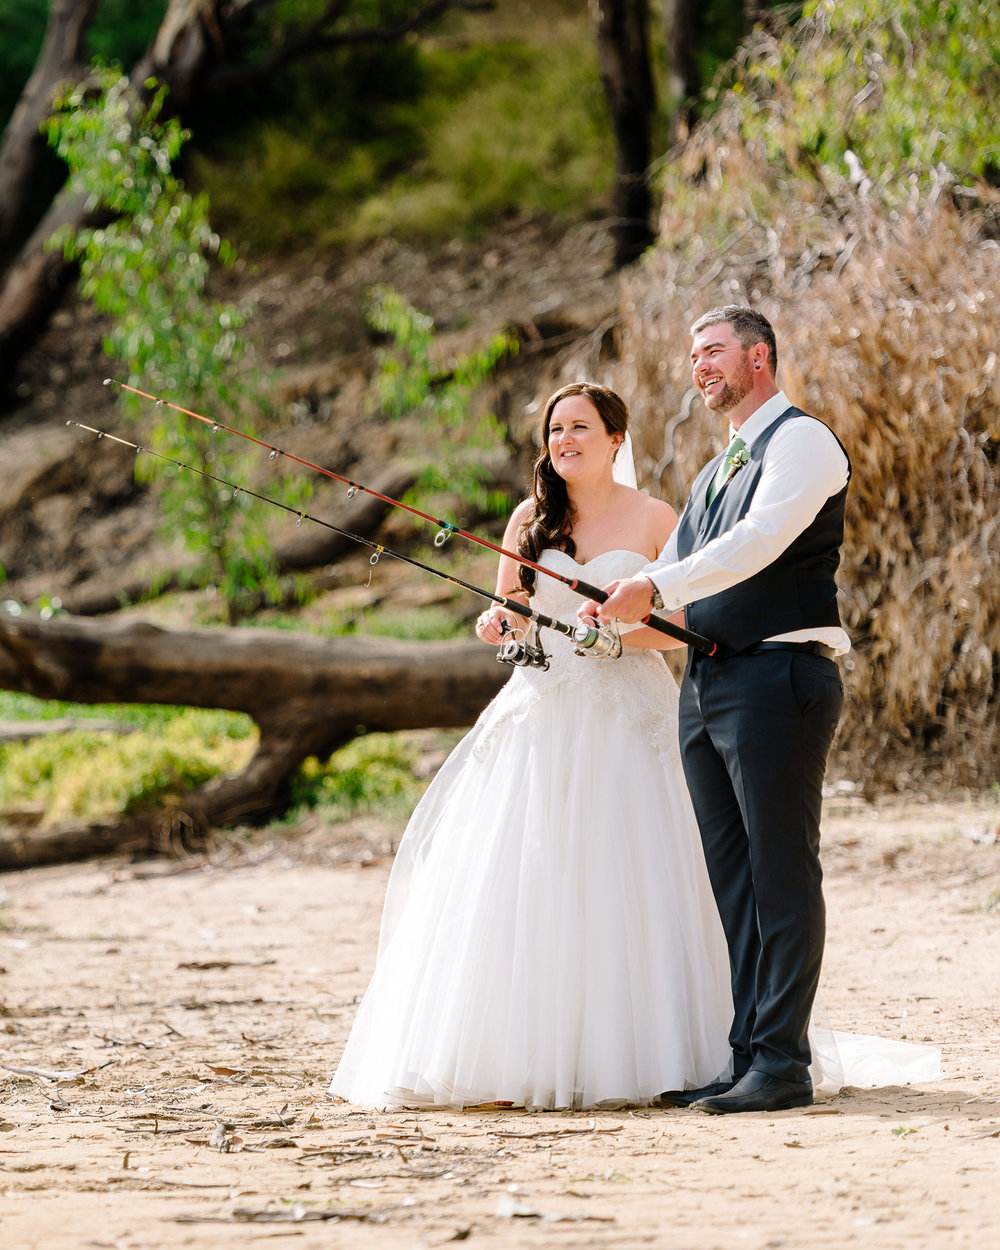 Justin_Jim_Echuca_Wedding_Photography_Tindarra-224.JPG